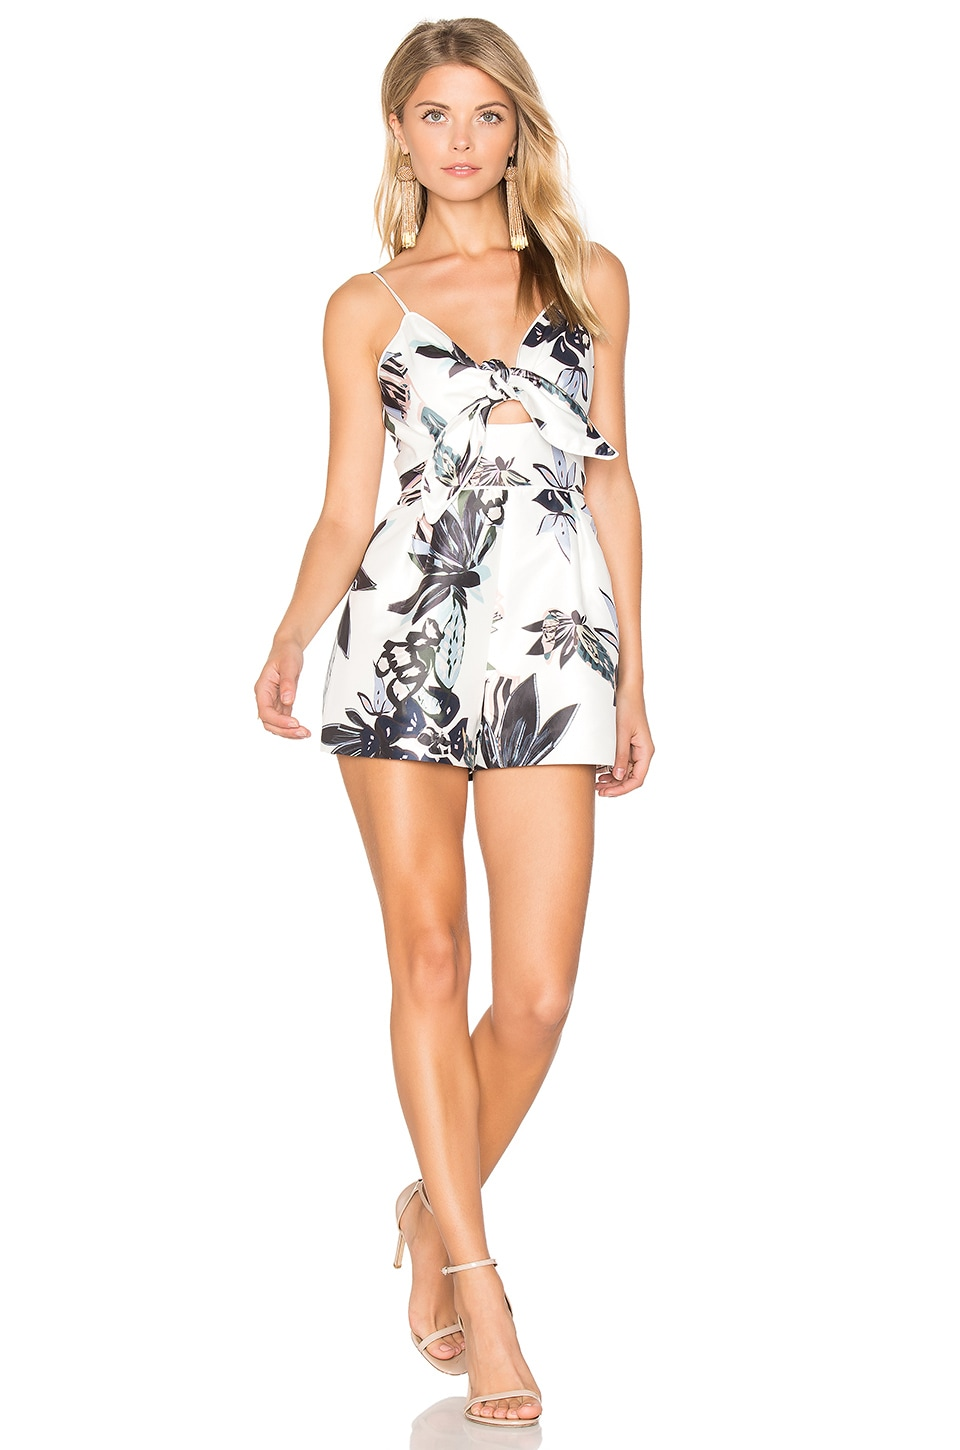 keepsake Coming Home Romper in Abstract Floral Print